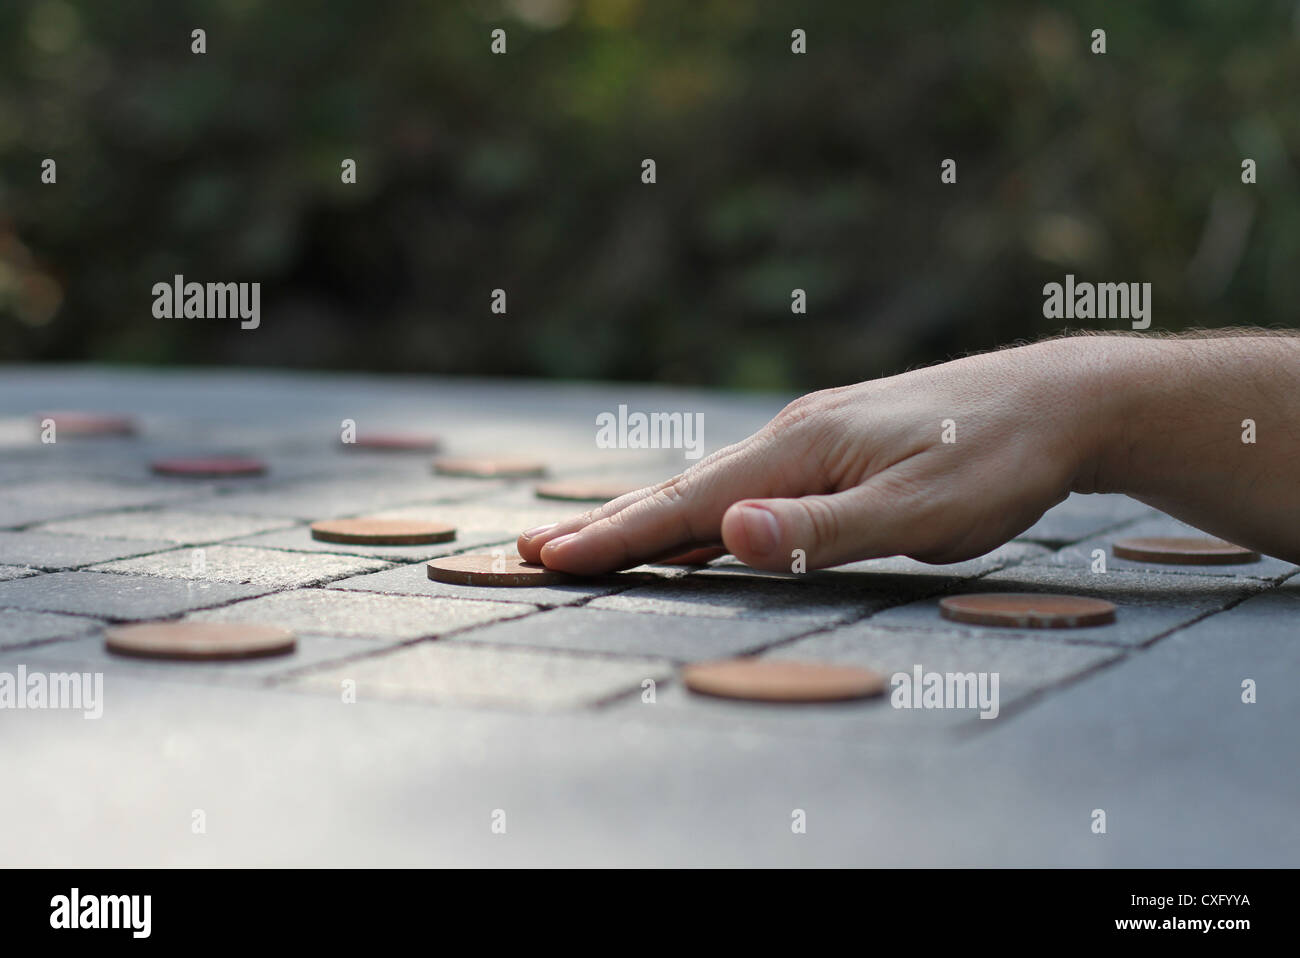 A hand moving a checker piece on a large outdoor checker board. Stock Photo